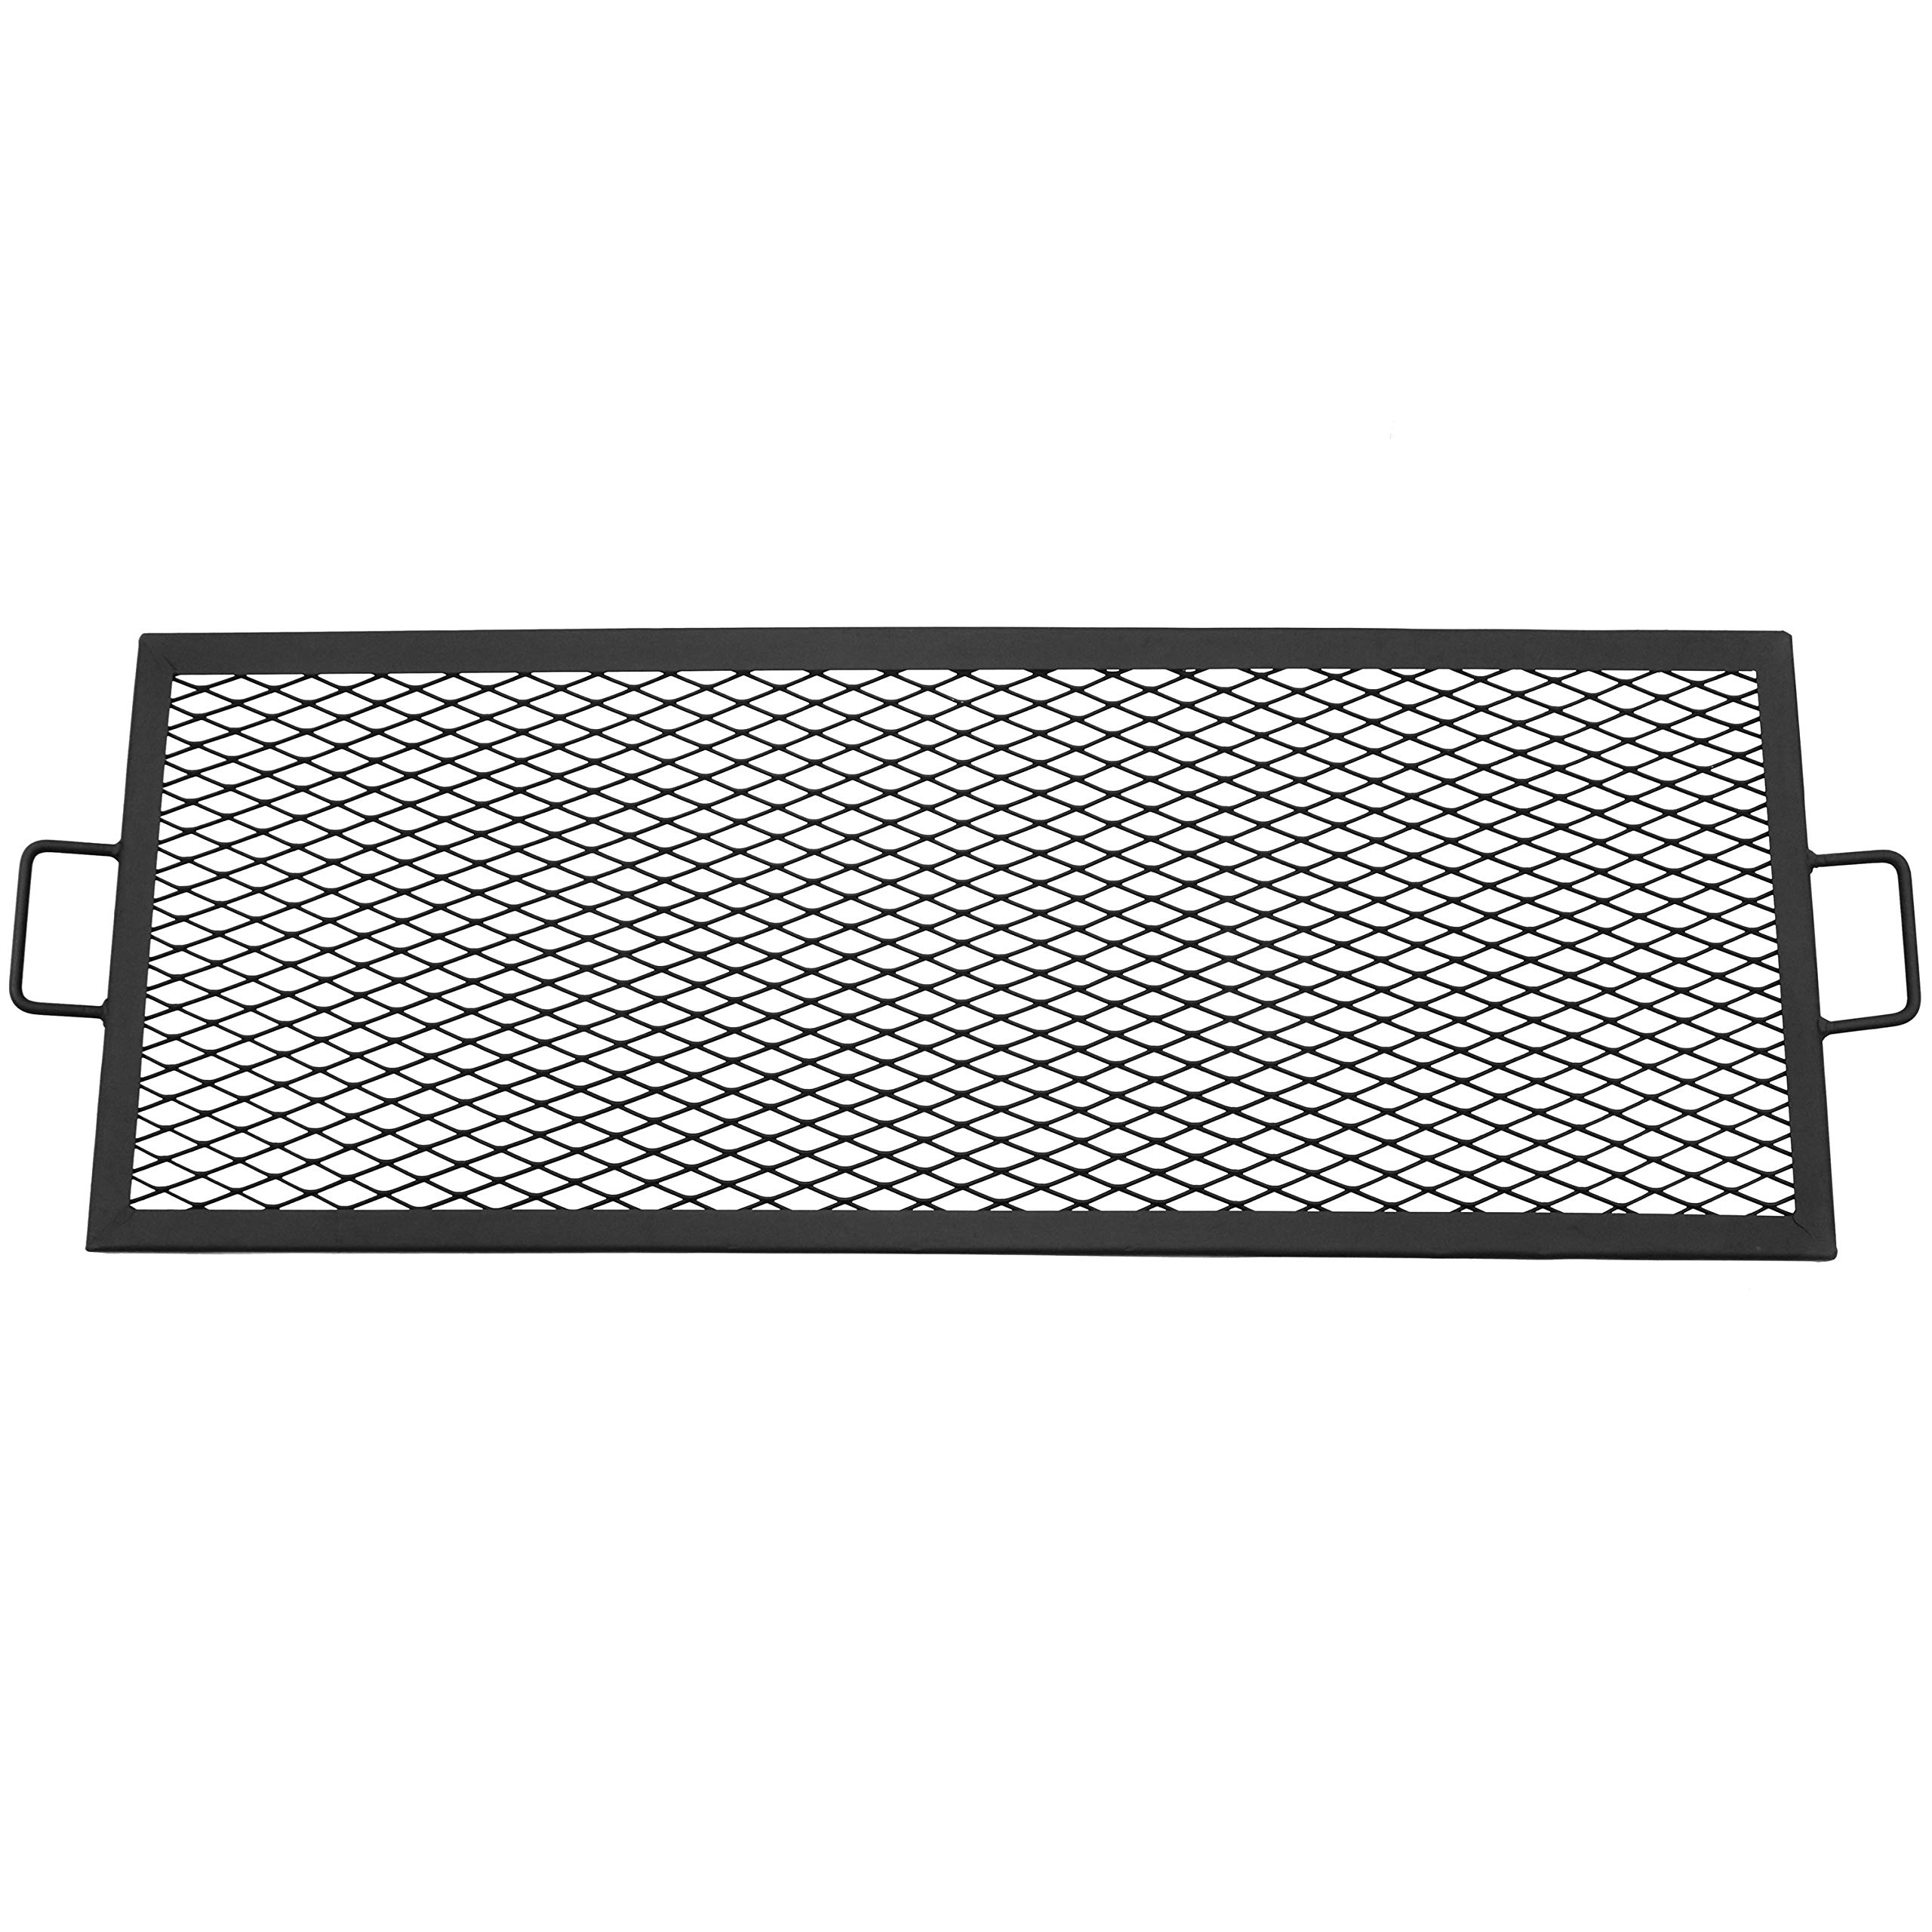 Sunnydaze X-Marks Fire Pit Cooking Grill Grate, Outdoor Rectangle BBQ Campfire Grill, Camping Cookware, 40 Inch